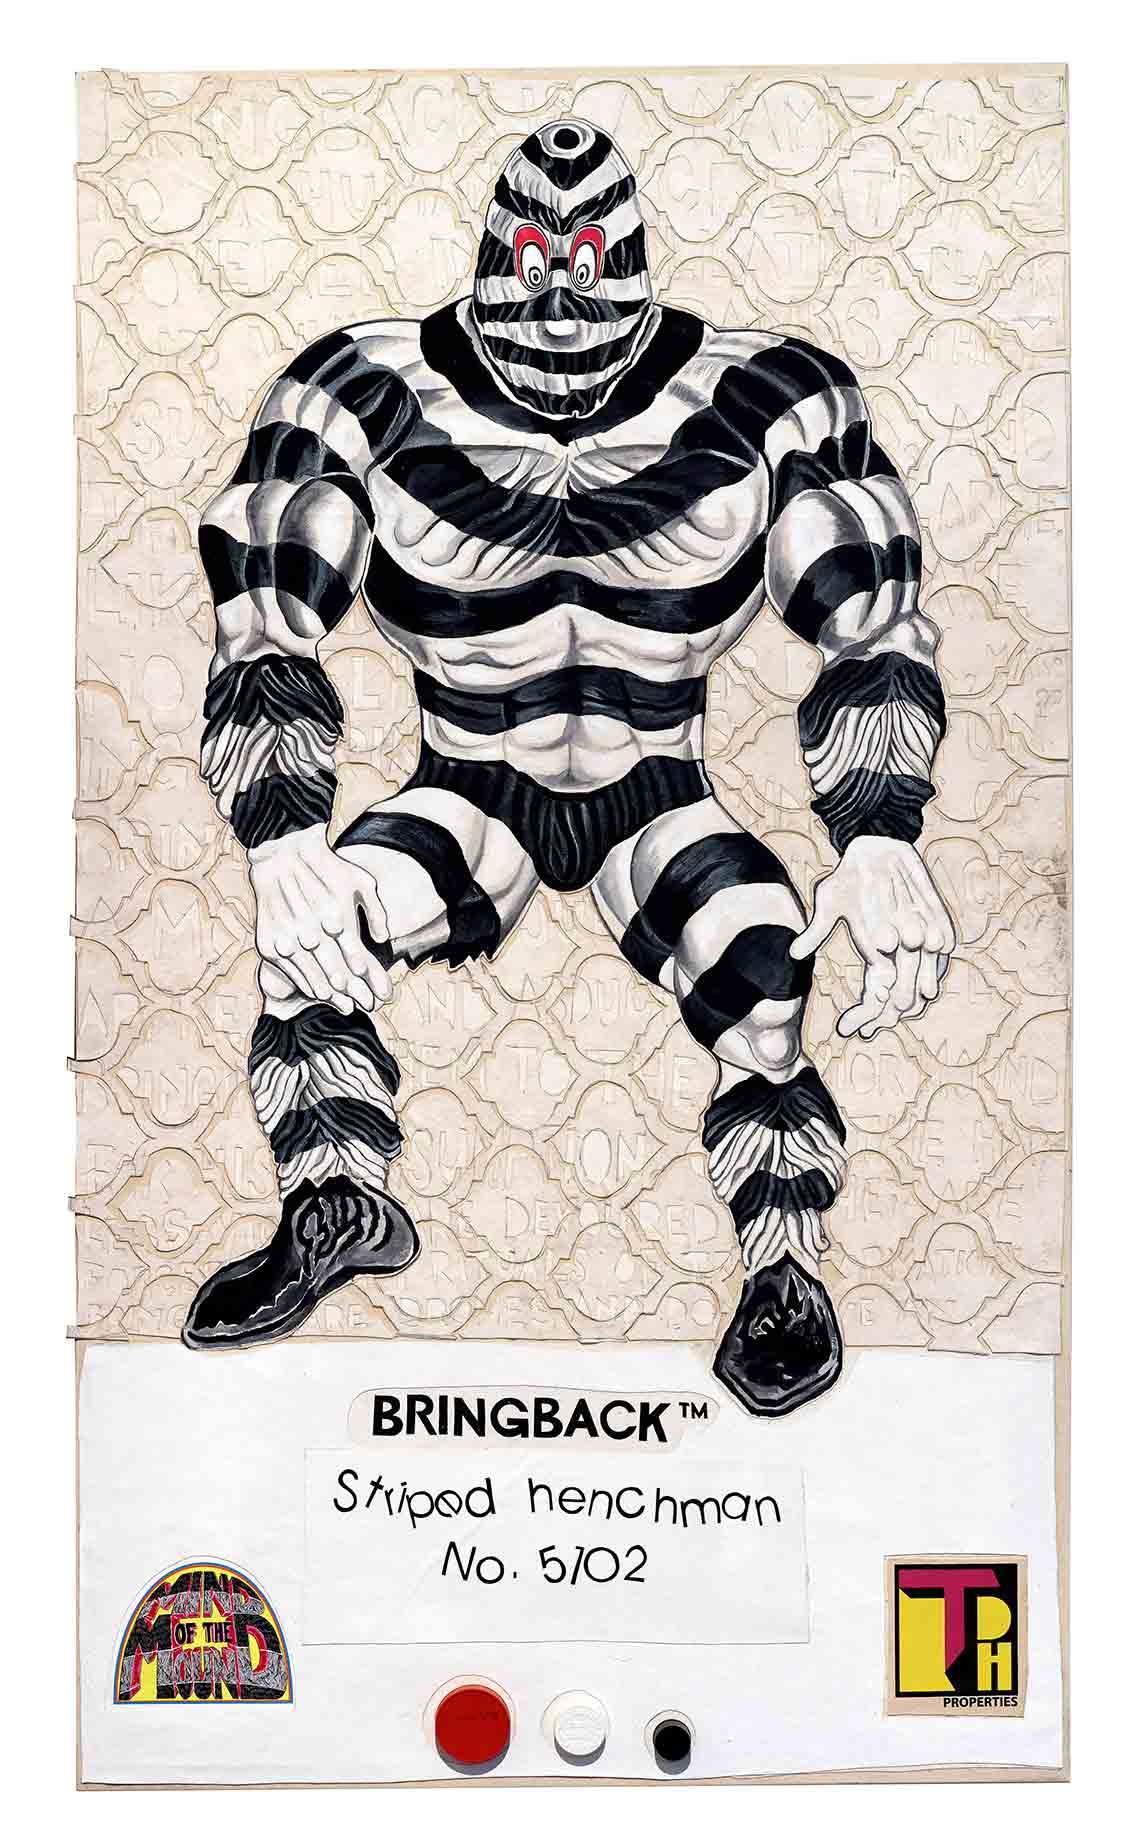 Bringback-Striped-Henchman-No.-5102